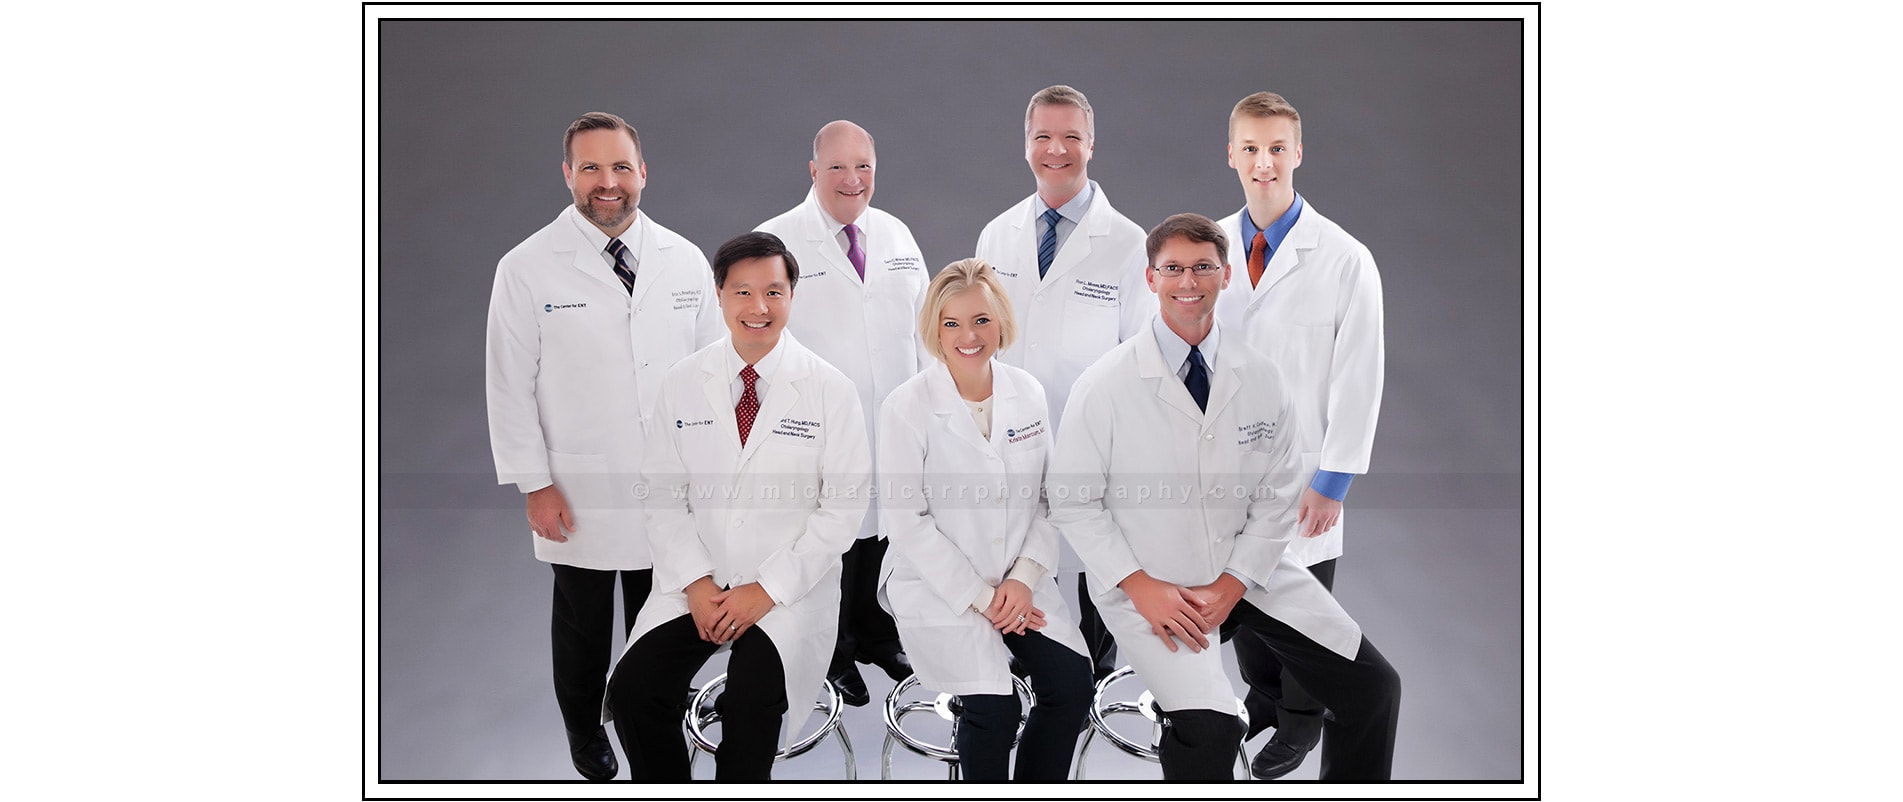 Professional Physican Group Portrait